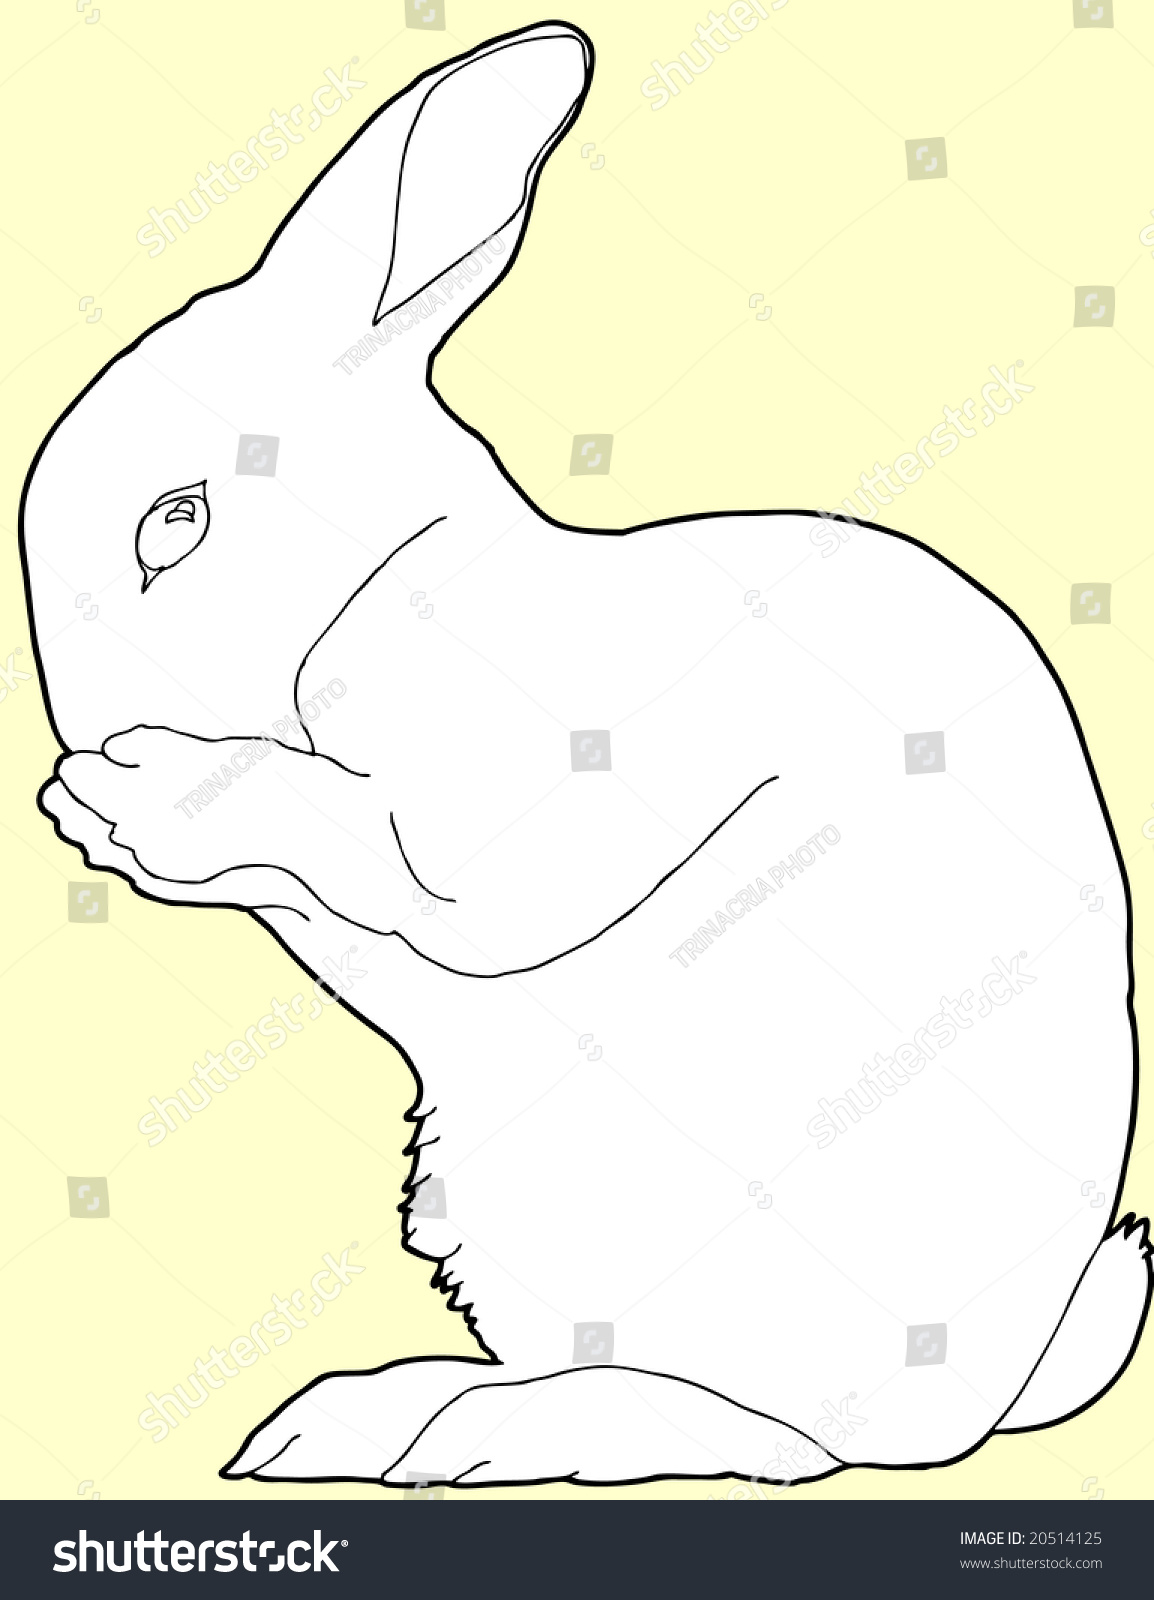 Line Art Easter Bunny : Contour line drawing of easter bunny stock vector